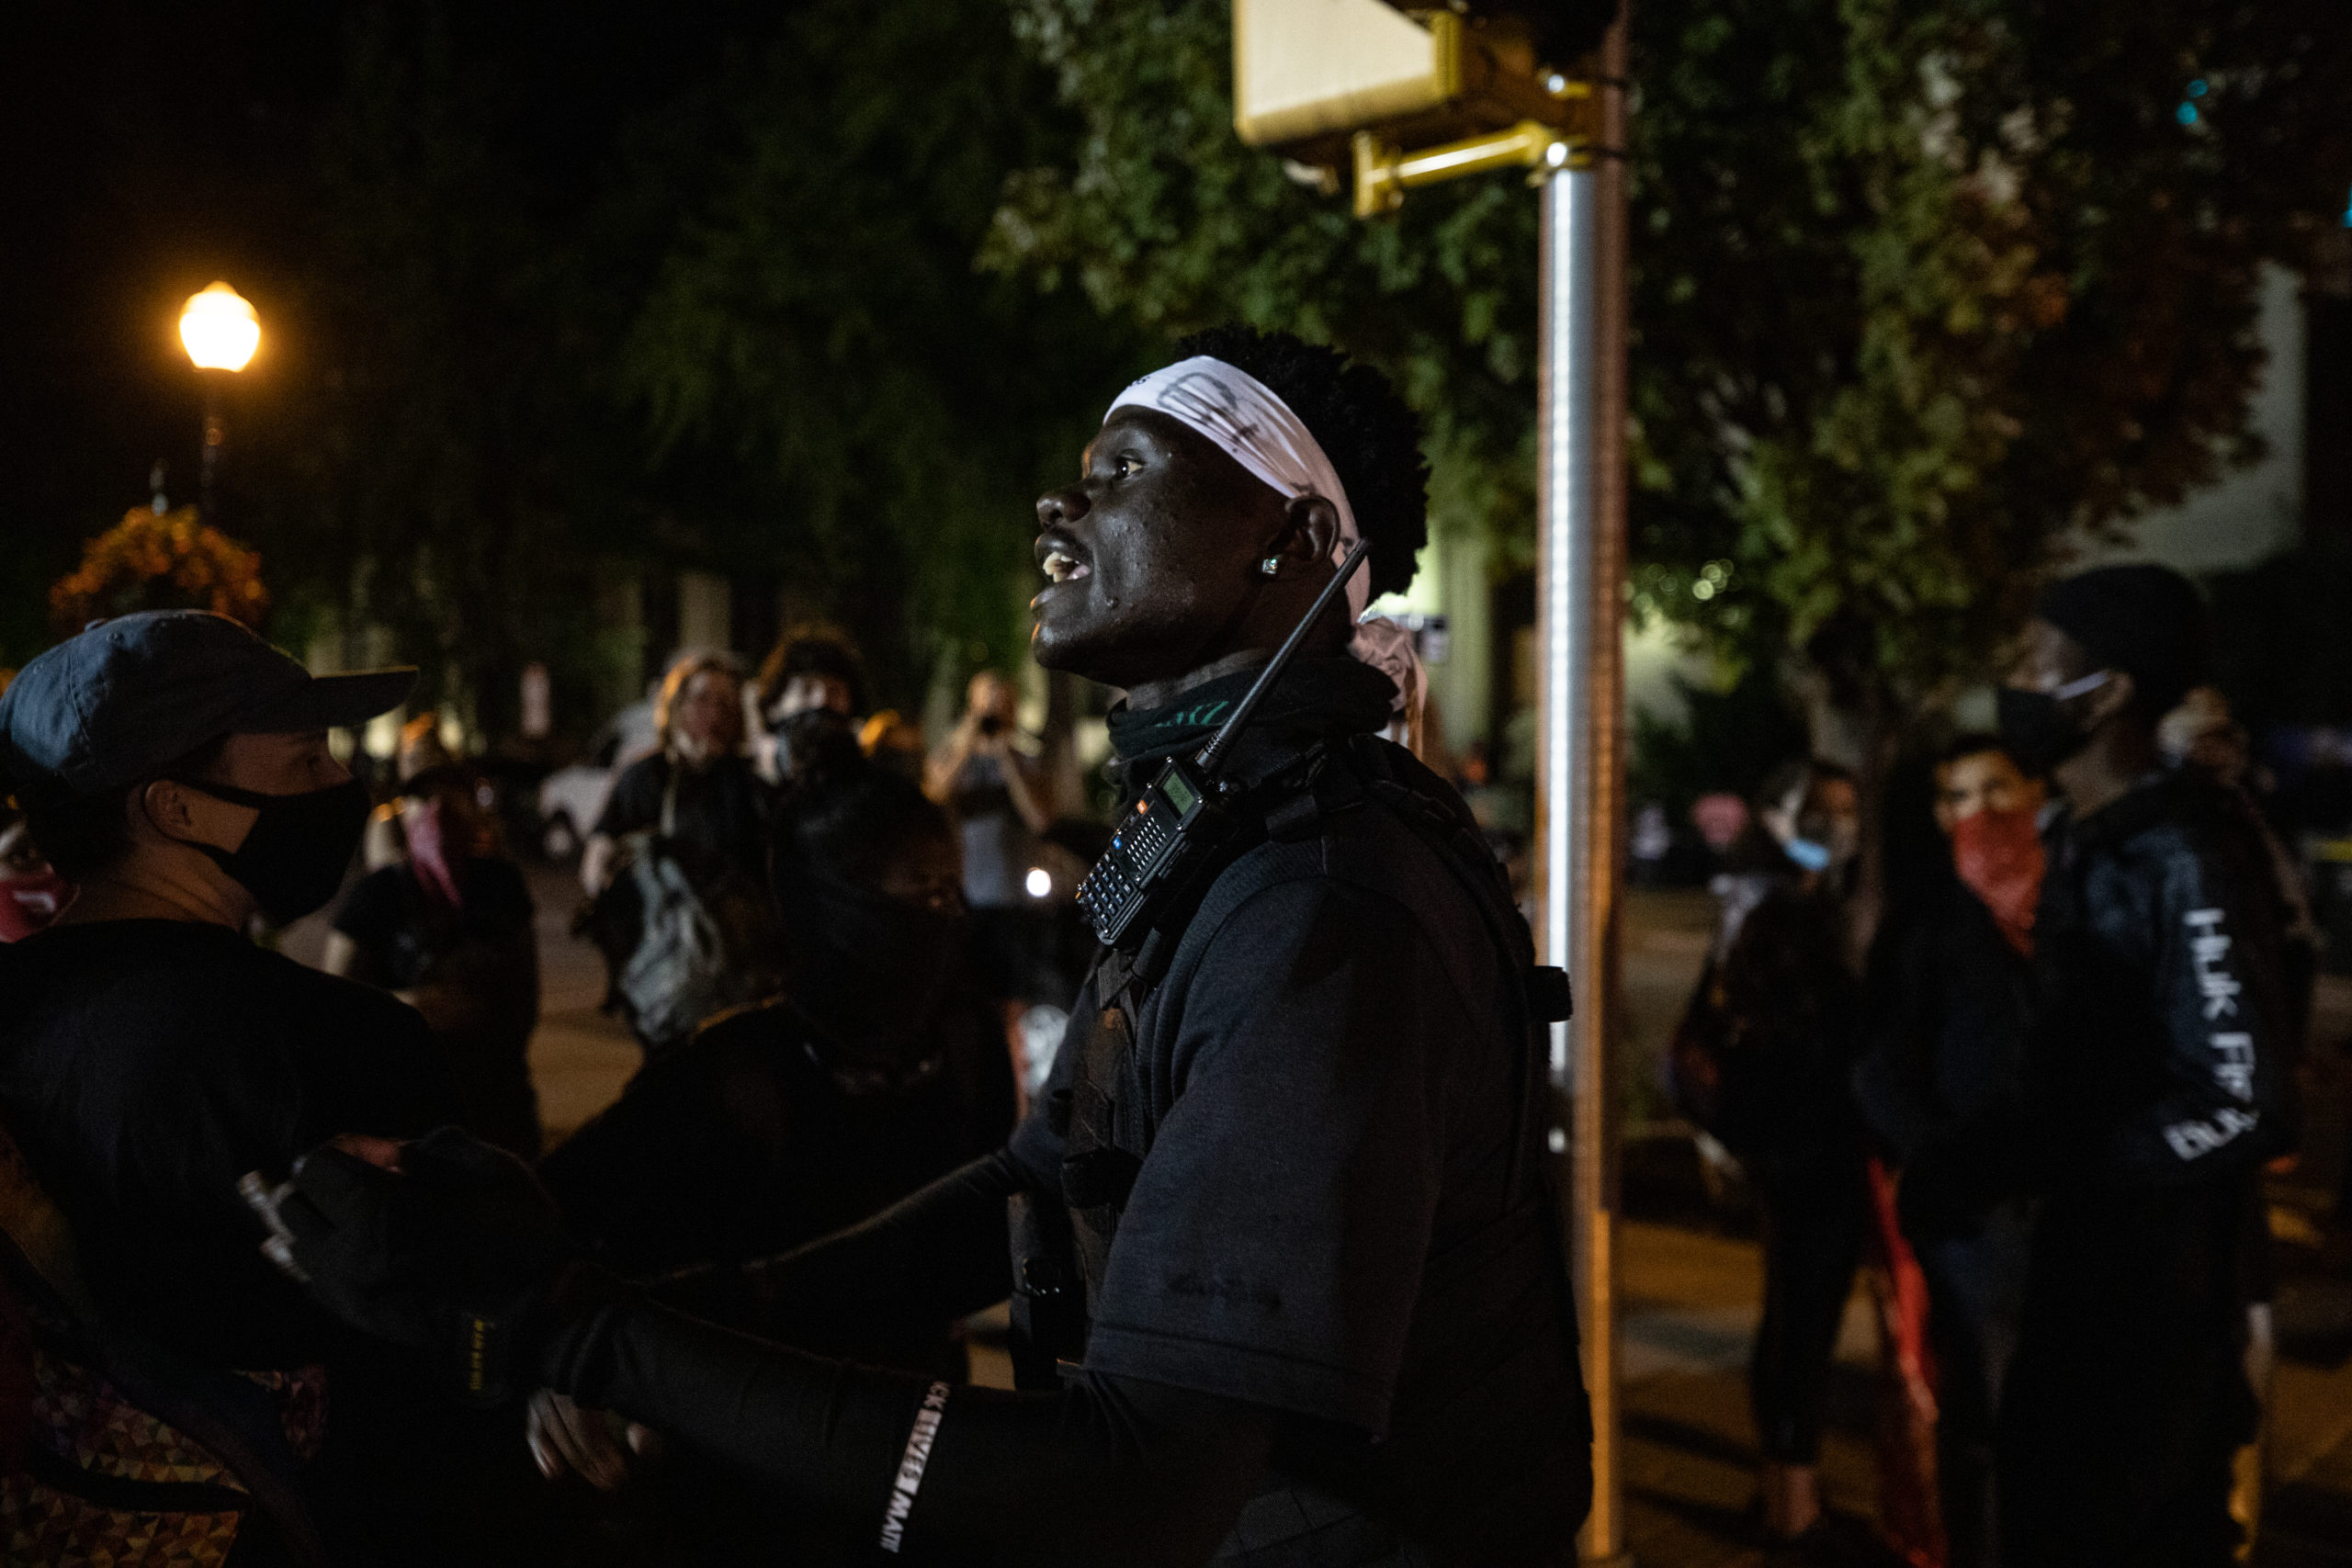 A man addressed a group of protesters in Lancaster, Pennsylvania on Monday night. (Photo - Kaylee Greenlee / Daily Caller News Foundation)